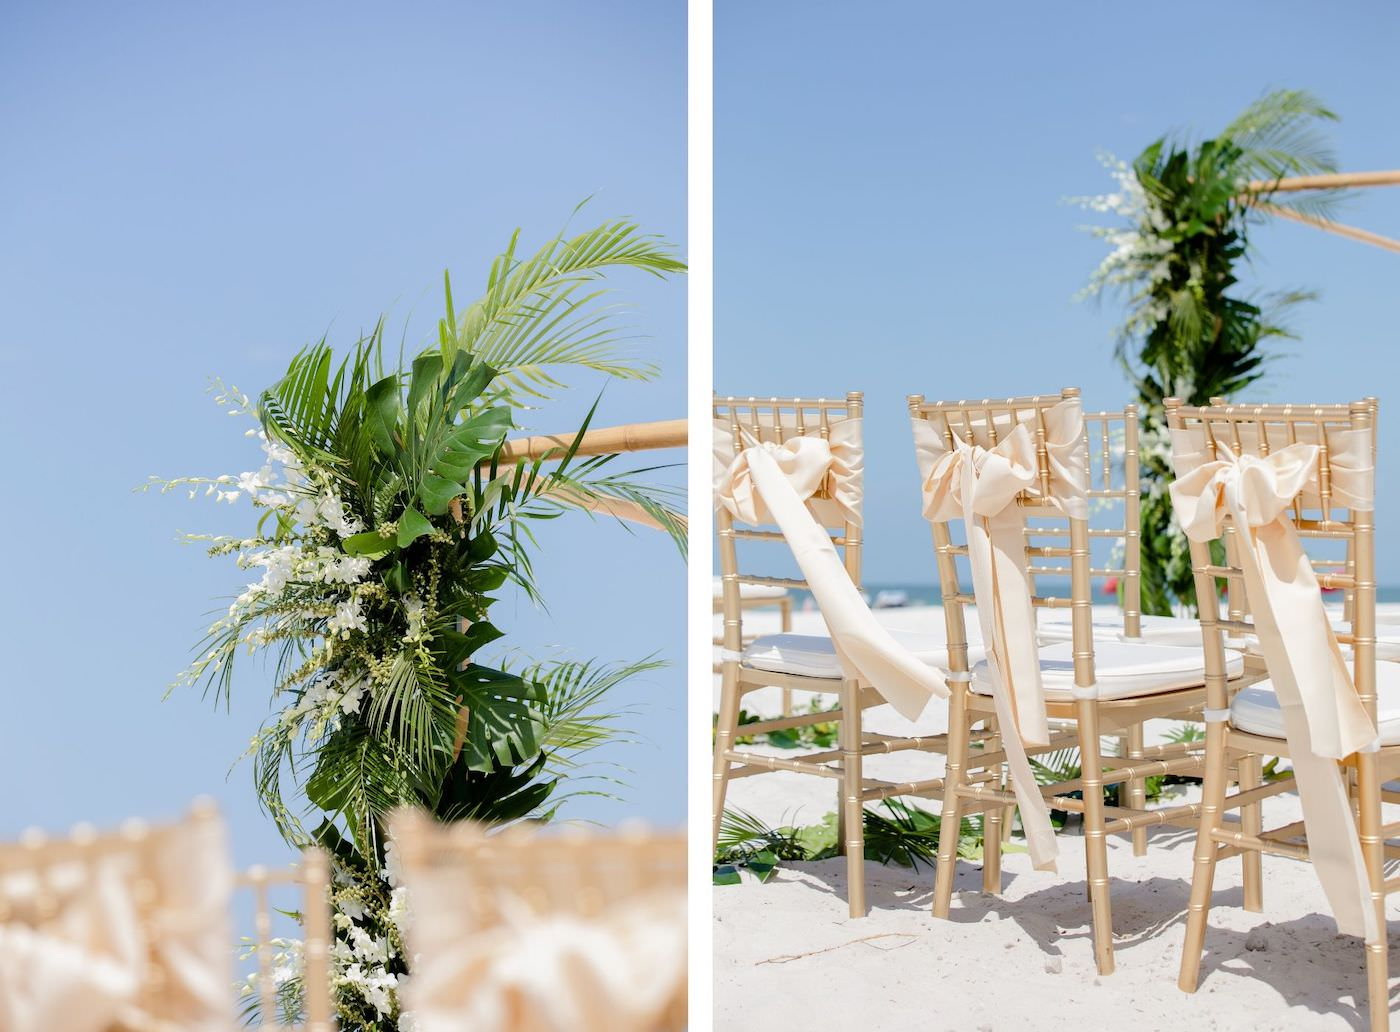 Clearwater Beach Wedding Venue Hilton Clearwater Beach   Modern Tropical Beach Wedding Ceremony with Gold Chiavari Chairs and Champagne Sash Bows and Tropical Palm Frond Leaf Floral Arrangement